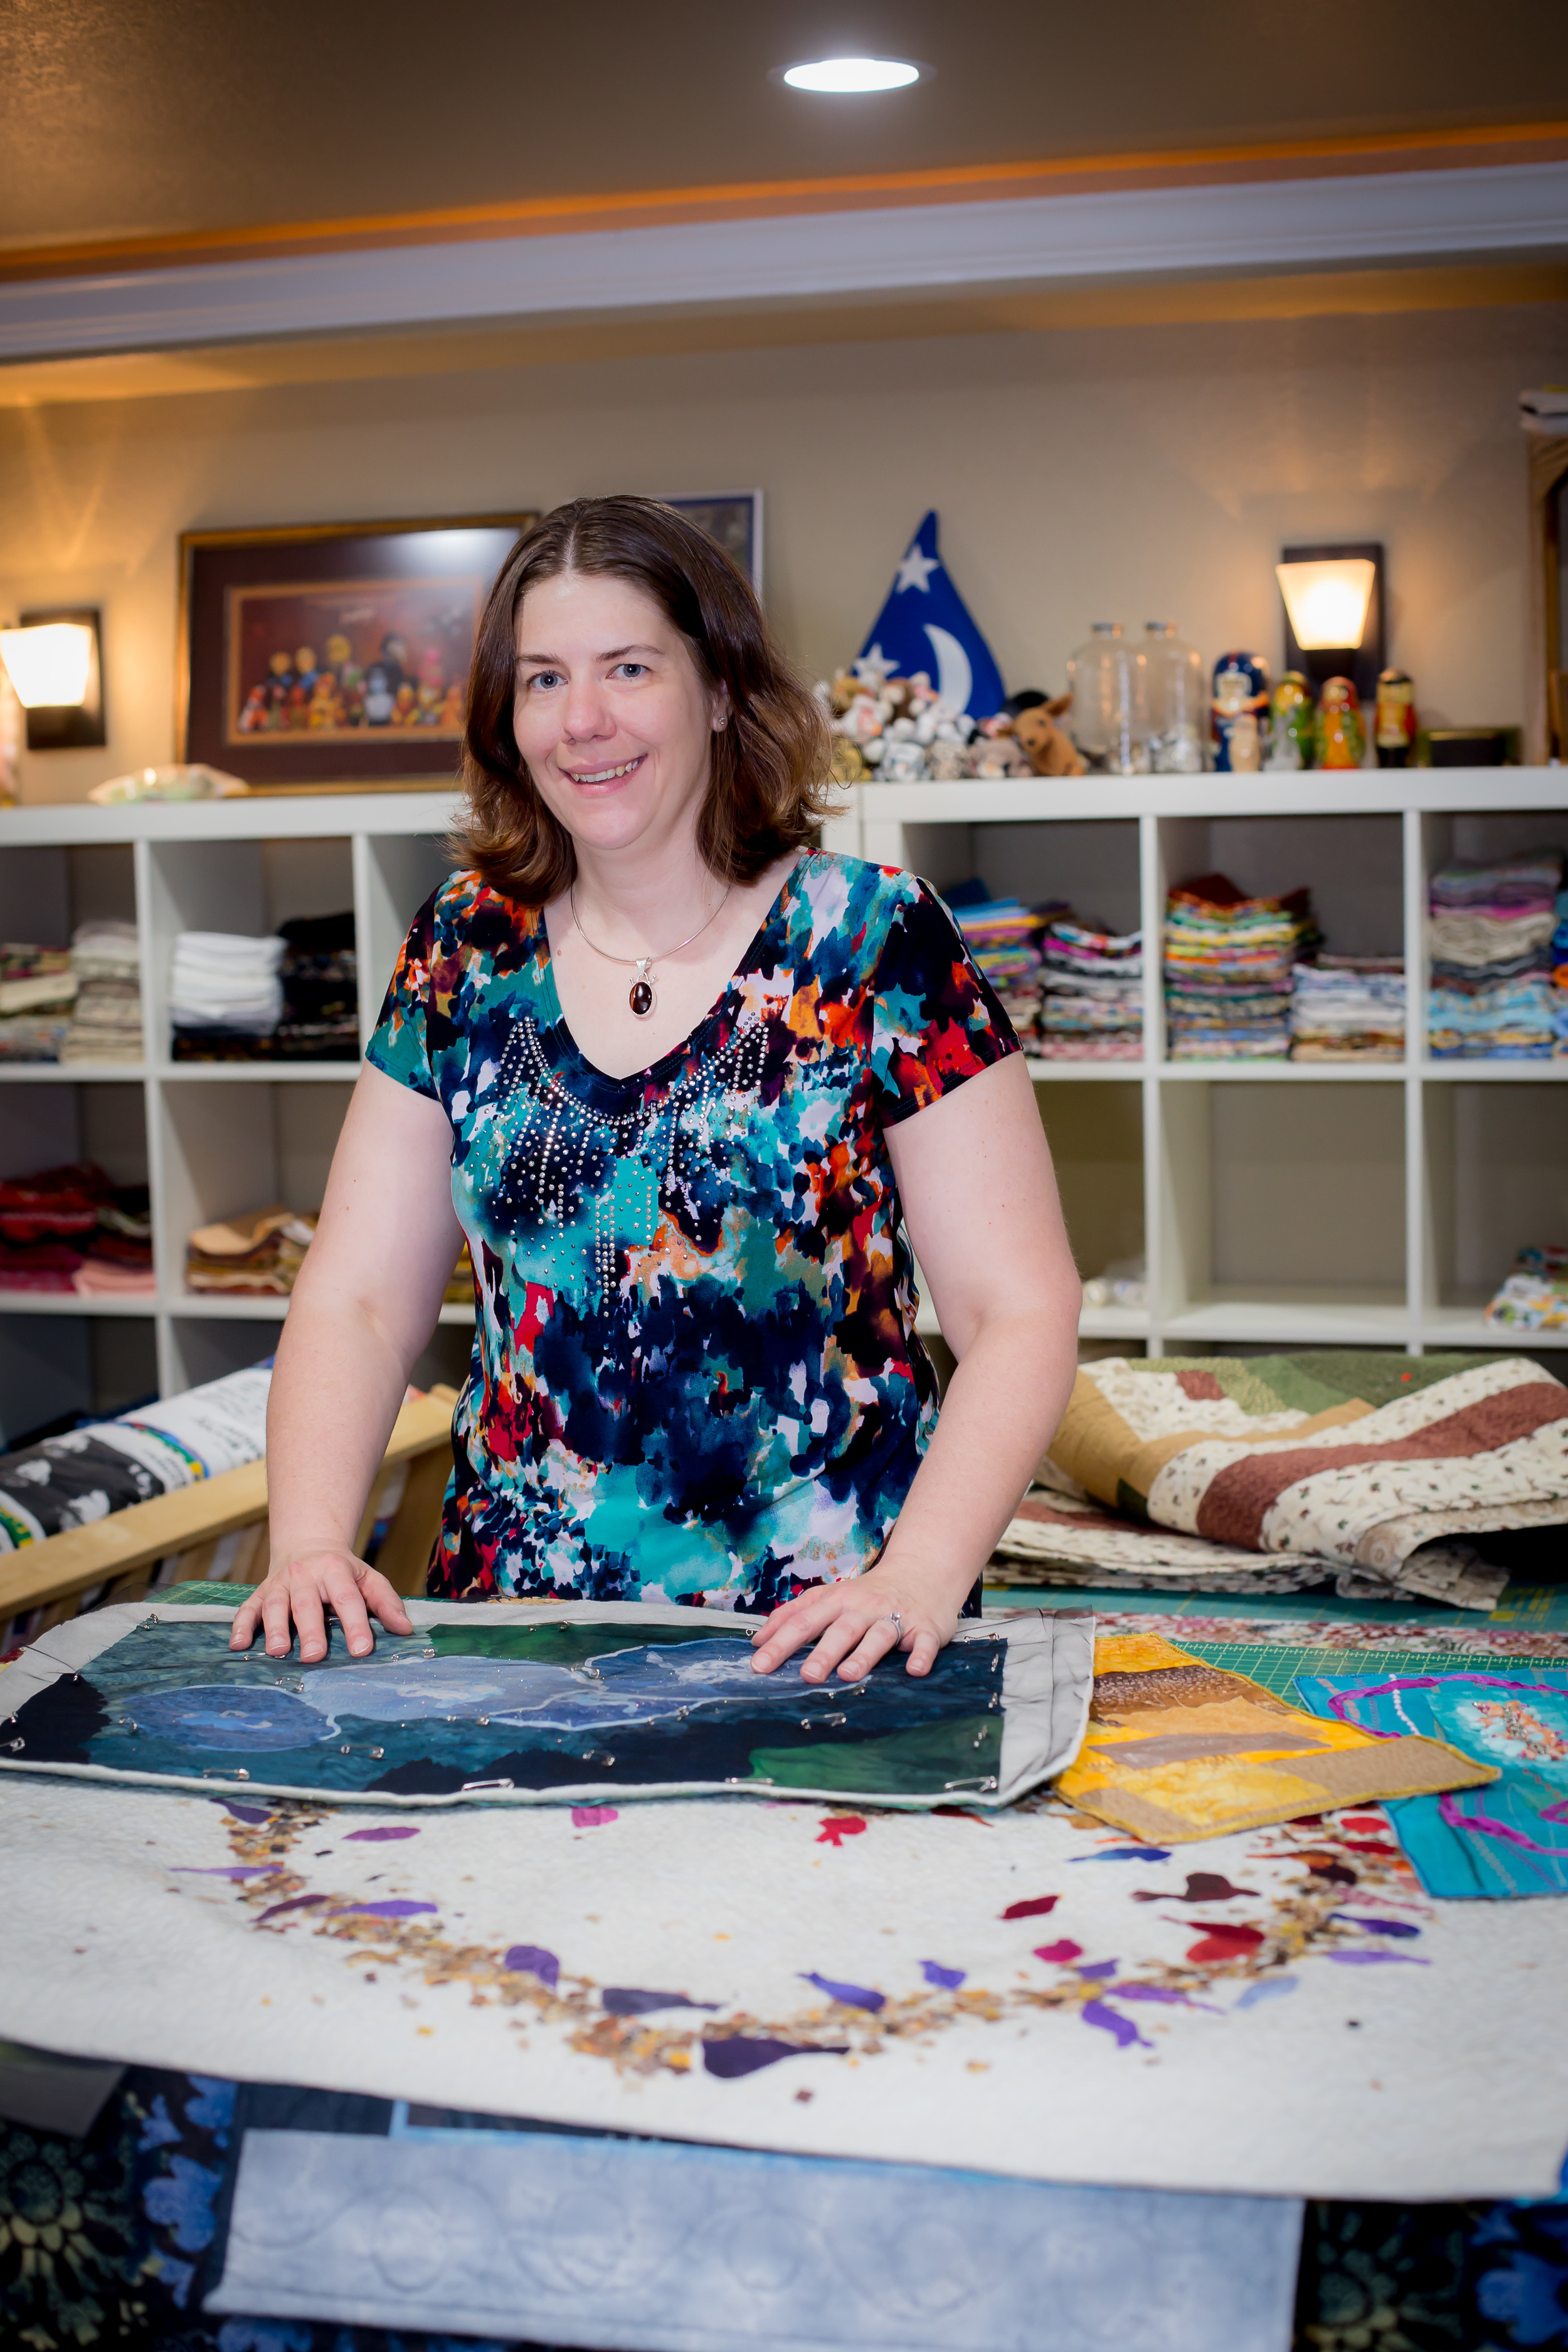 """Rebecca Musgrave   Textile/Fiber Art                       Normal   0           false   false   false     EN-US   JA   X-NONE                                                                                                                                                                                                                                                                                                                                                                              /* Style Definitions */ table.MsoNormalTable {mso-style-name:""""Table Normal""""; mso-tstyle-rowband-size:0; mso-tstyle-colband-size:0; mso-style-noshow:yes; mso-style-priority:99; mso-style-parent:""""""""; mso-padding-alt:0in 5.4pt 0in 5.4pt; mso-para-margin:0in; mso-para-margin-bottom:.0001pt; mso-pagination:widow-orphan; font-size:12.0pt; font-family:Cambria; mso-ascii-font-family:Cambria; mso-ascii-theme-font:minor-latin; mso-hansi-font-family:Cambria; mso-hansi-theme-font:minor-latin;}       I initially became a quilter as creative escape from my day job staring at a flickering screen as a software test engineer. I started with traditional bed quilts and T-shirt quilts and grew into pictorial art and abstract mixed media fiber wall hangings. Doing custom work, like pet portraits, baby, and memory quiltsenergizes me. When I'm working on a new project I can often be found fondling fabric in local quilt shops.      Visit Artist's Website"""